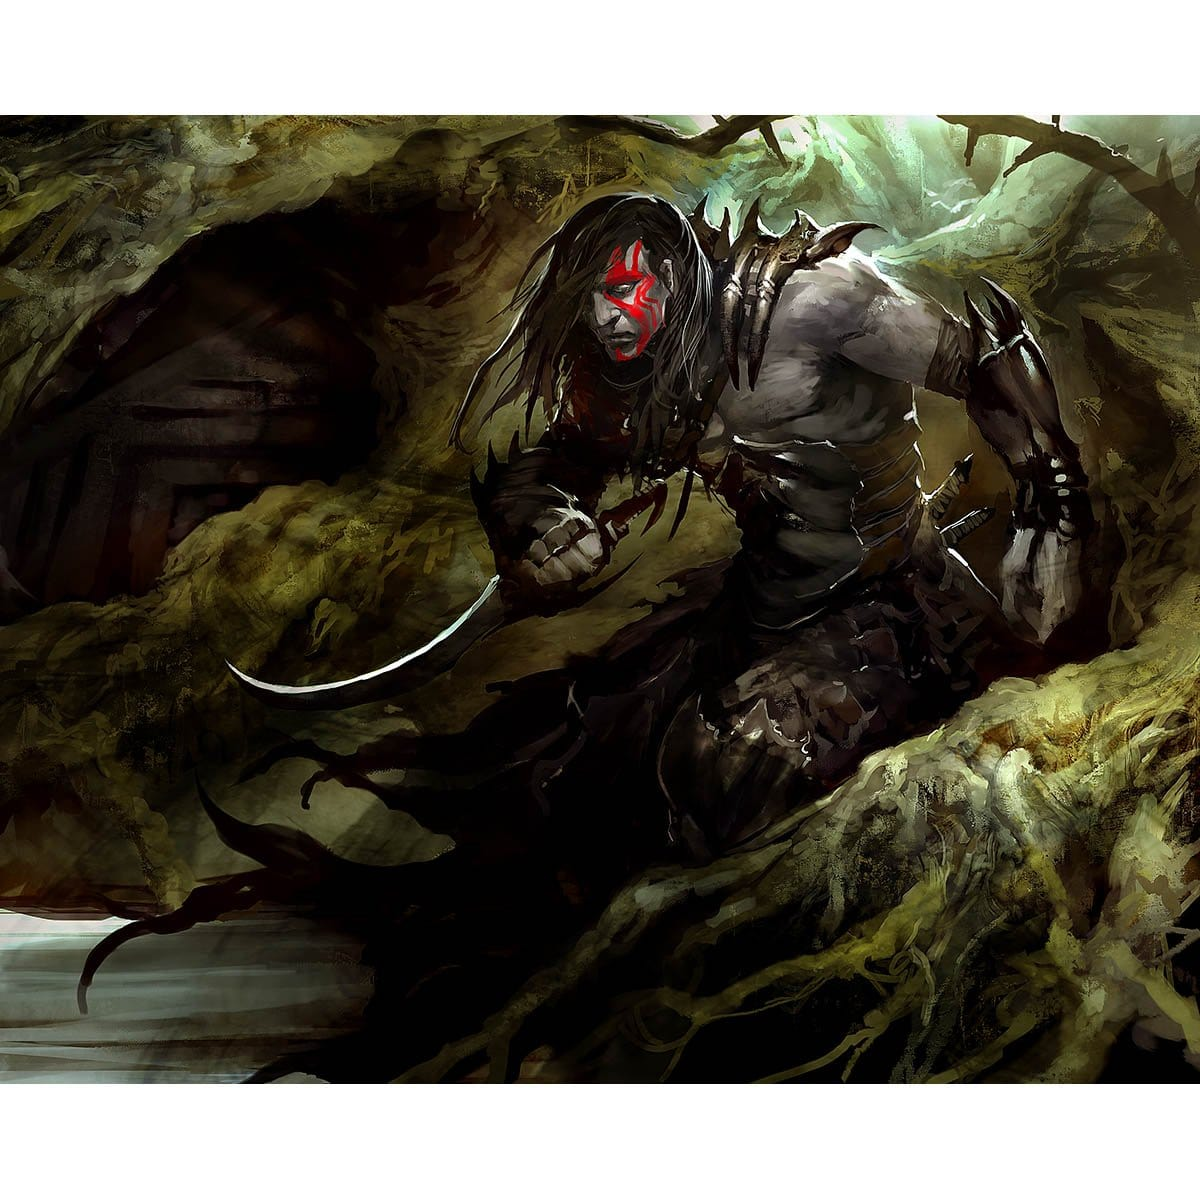 Vampire Token Print - Print - Original Magic Art - Accessories for Magic the Gathering and other card games